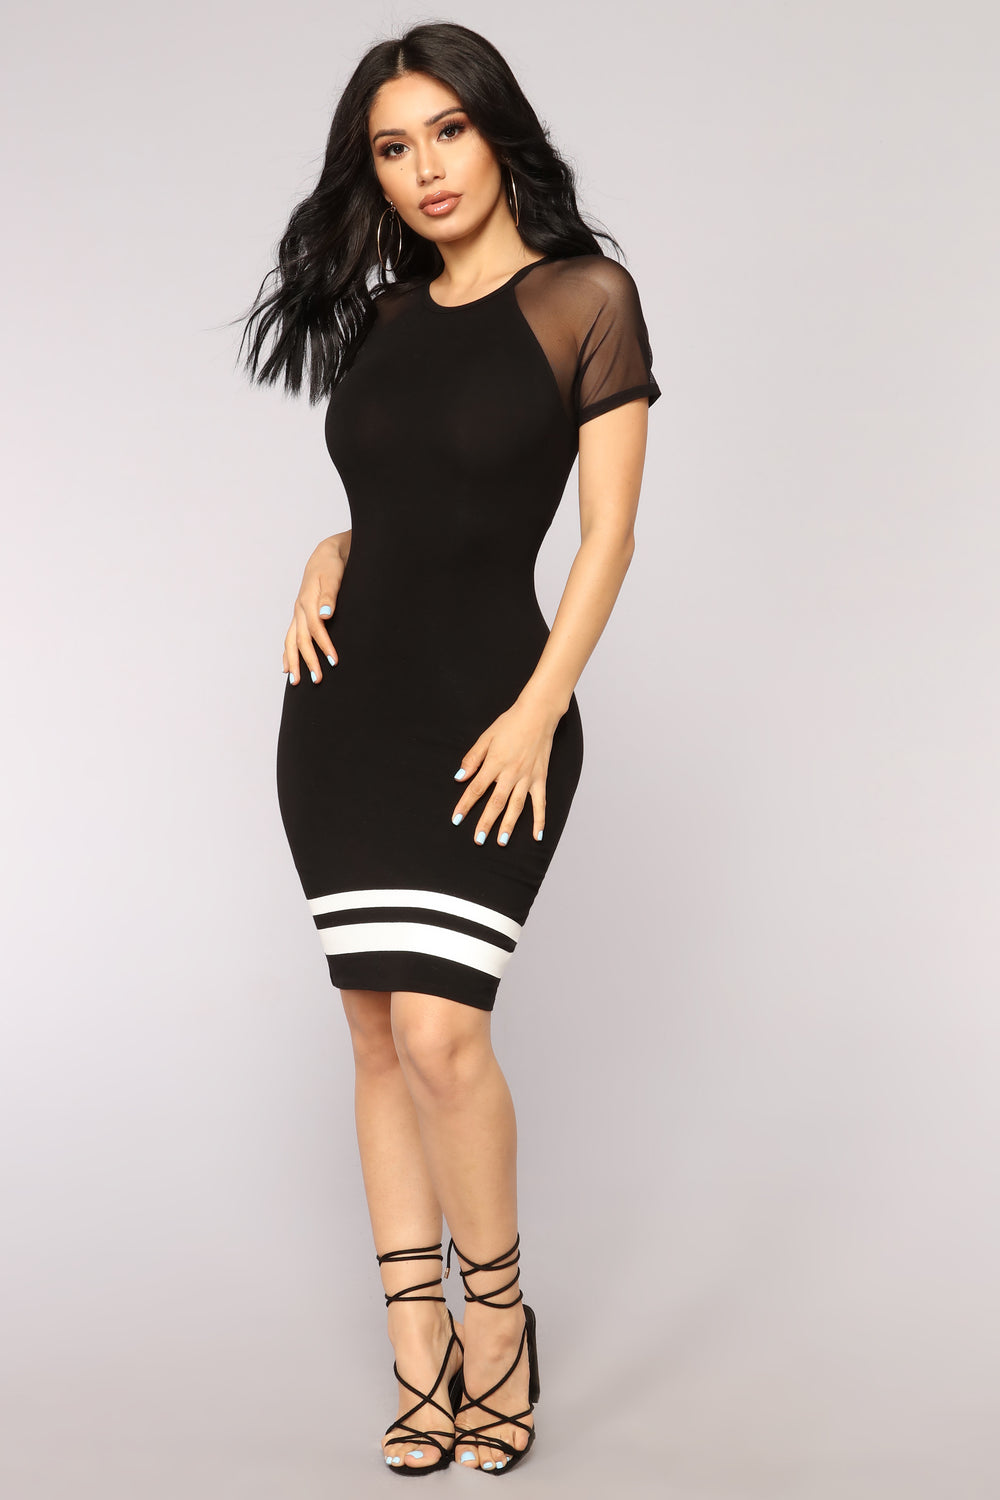 Physical Activity Dress - Black